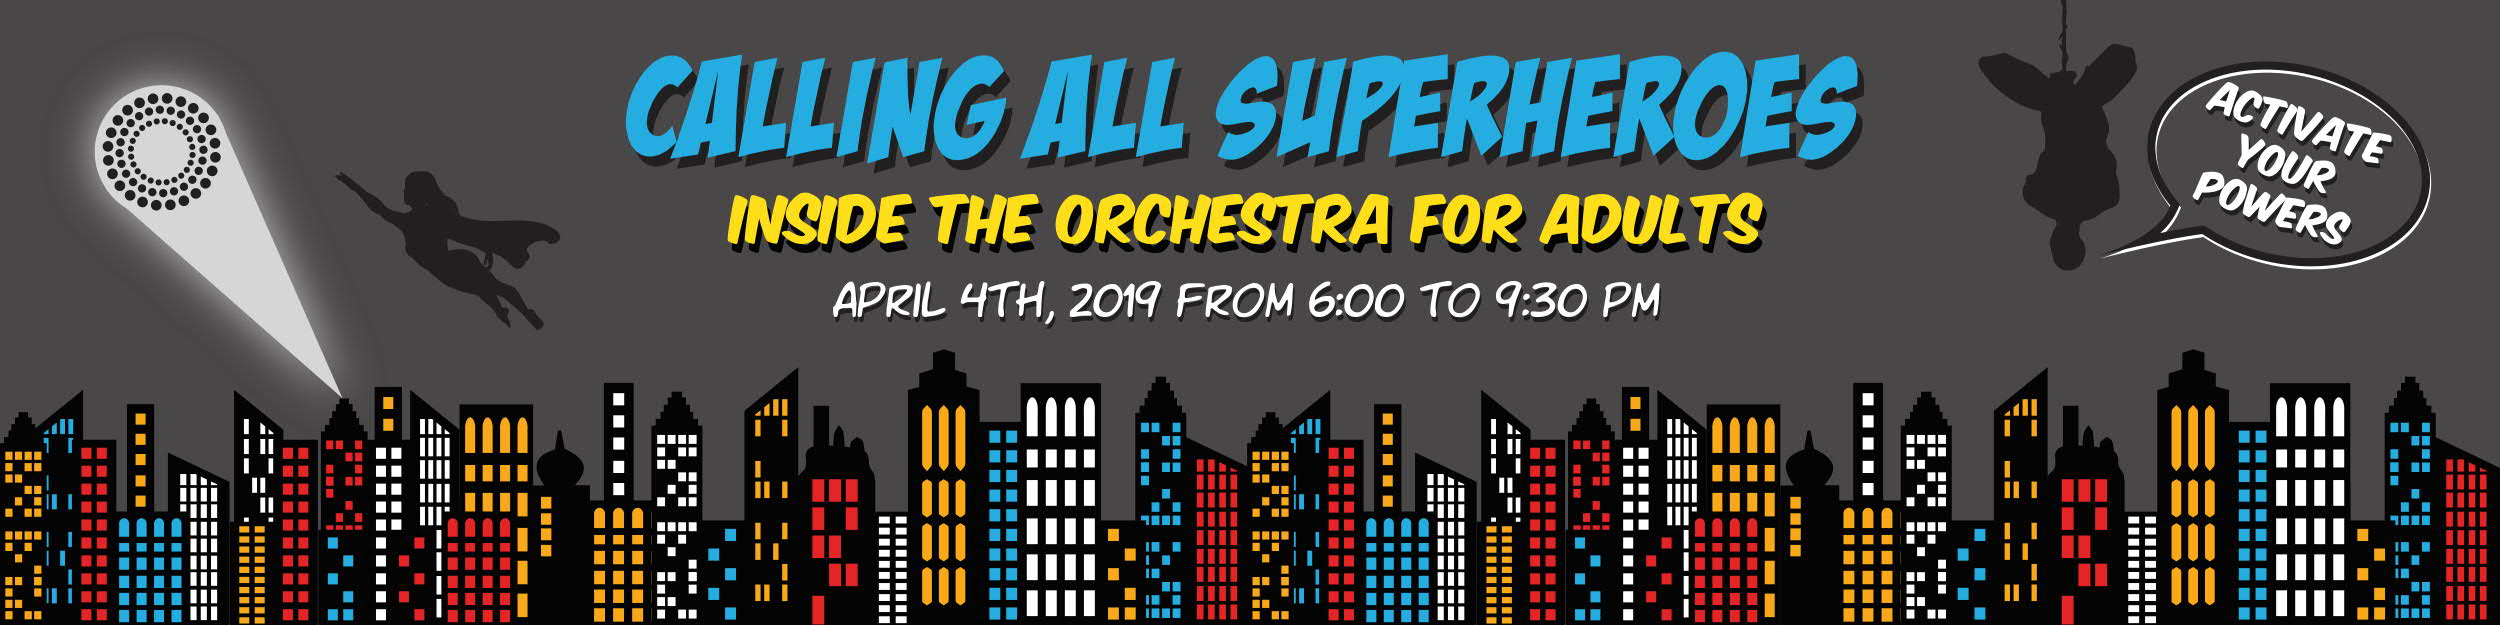 EVENTS: Inside the Orchestra for Adults: Calling All Superheroes – McNichols Civic Center Bldg. 6 p.m.